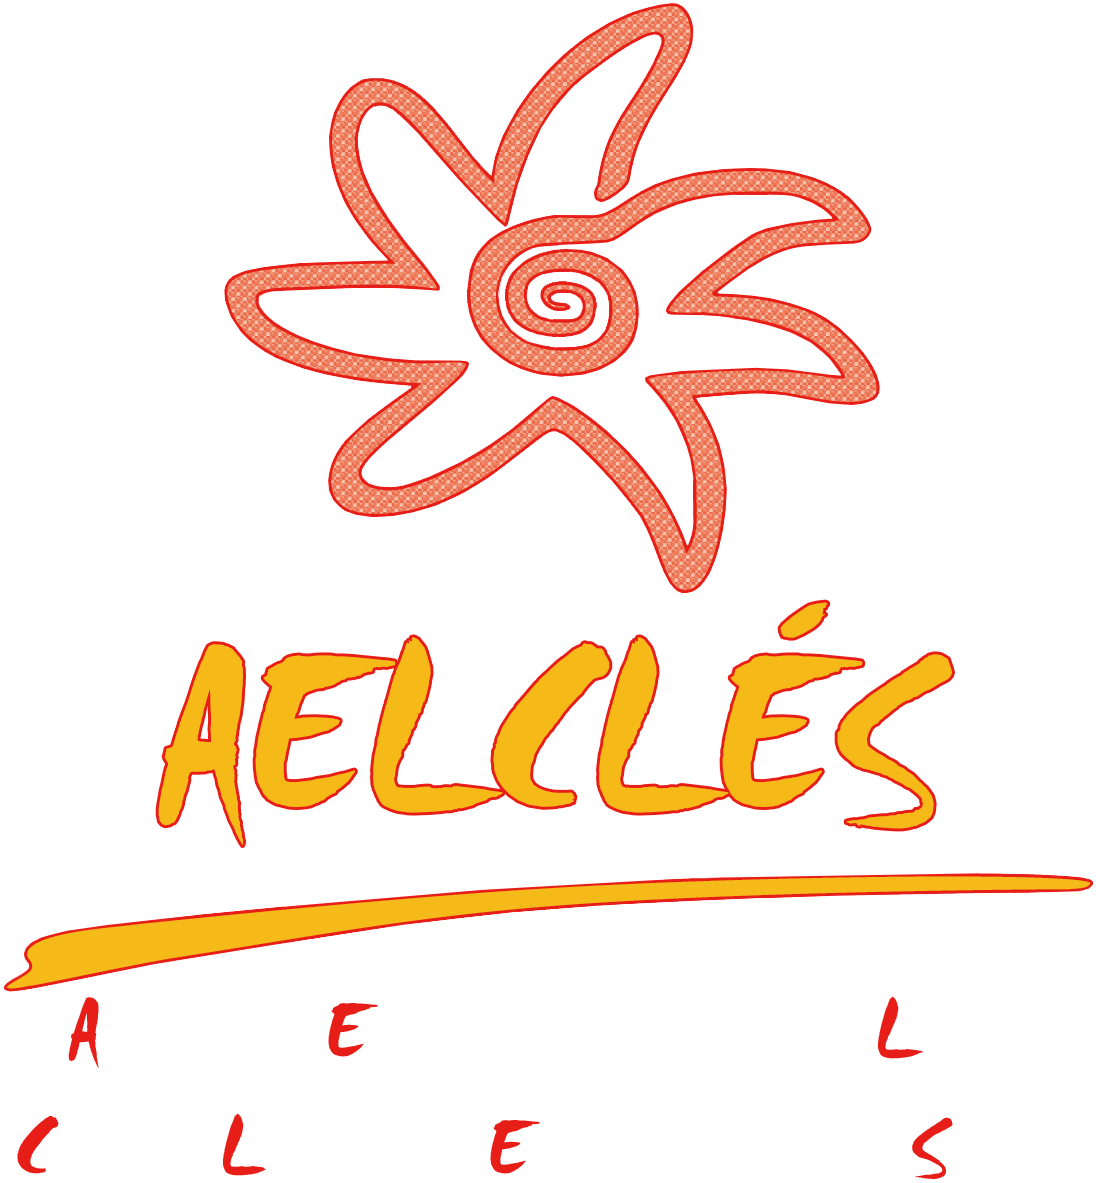 AELCLES Logo